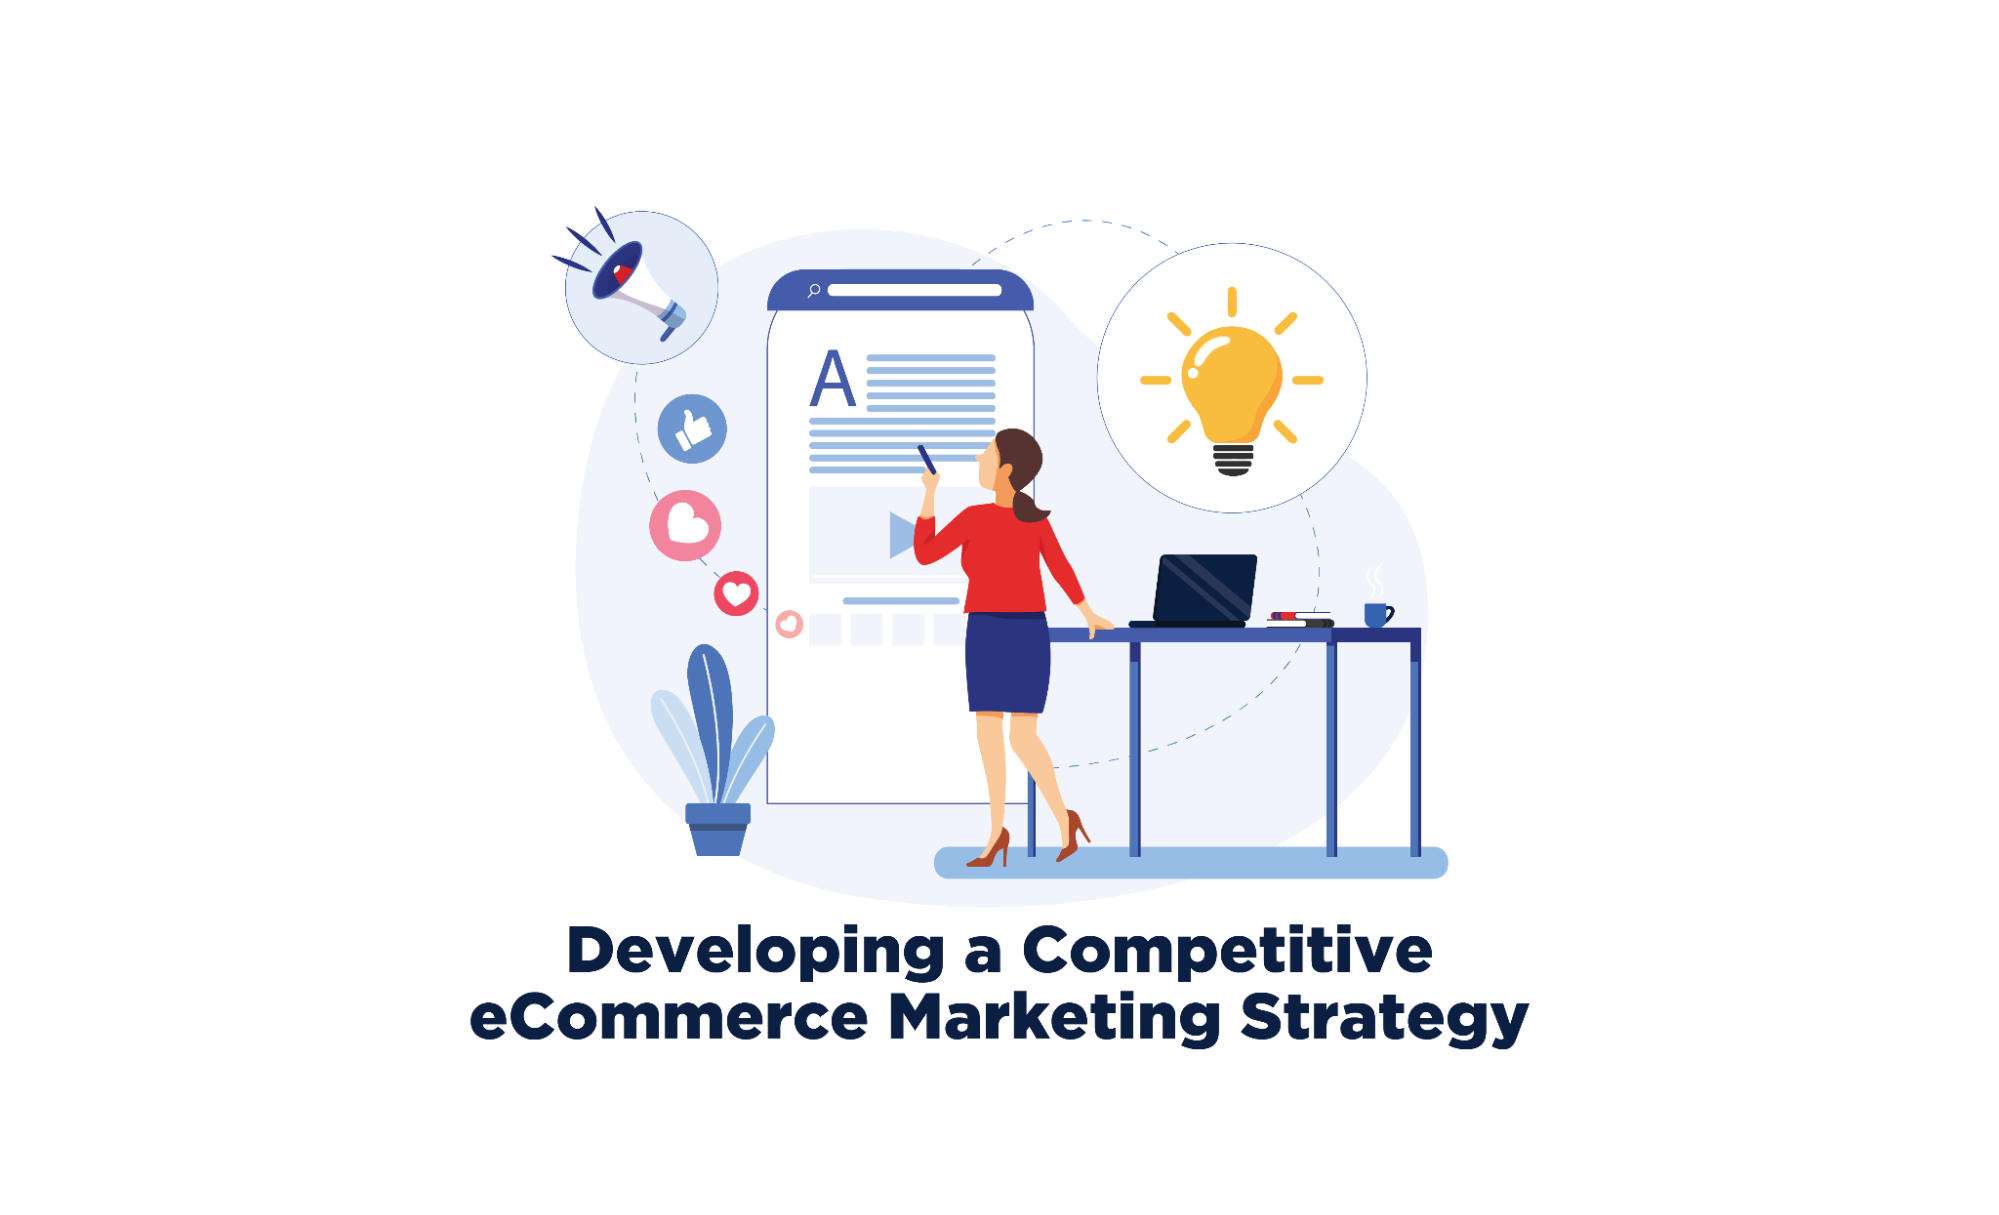 Important Factors to Consider While Developing a Competitive ECommerce Marketing Strategy